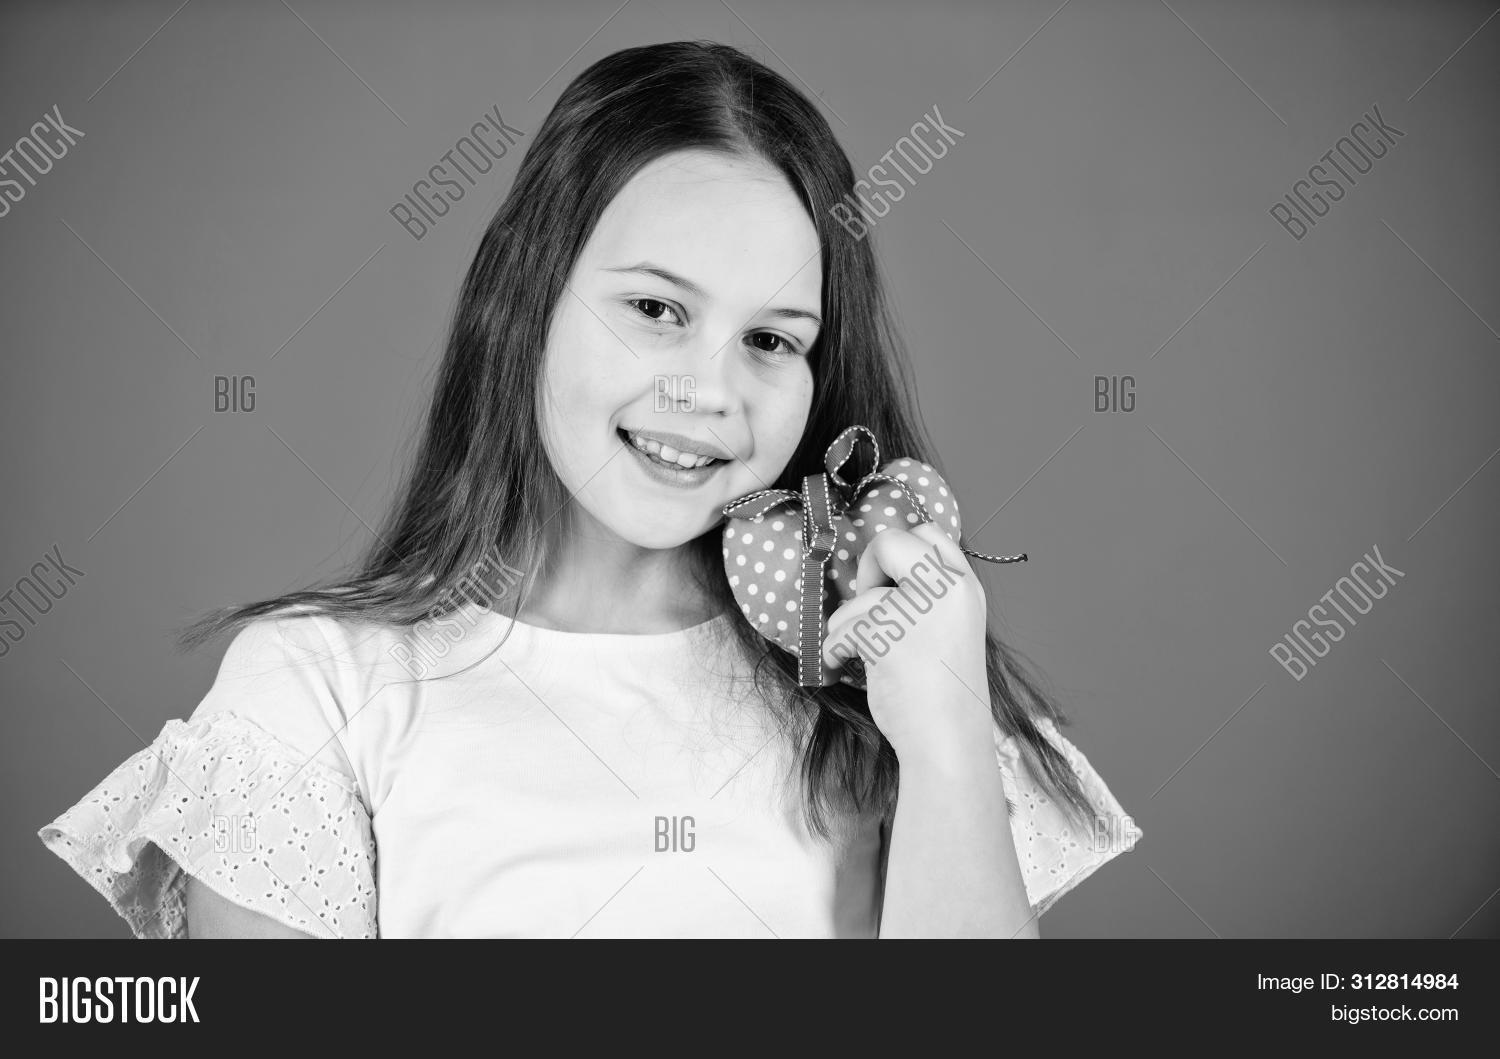 Kid Adorable Girl Image Photo Free Trial Bigstock